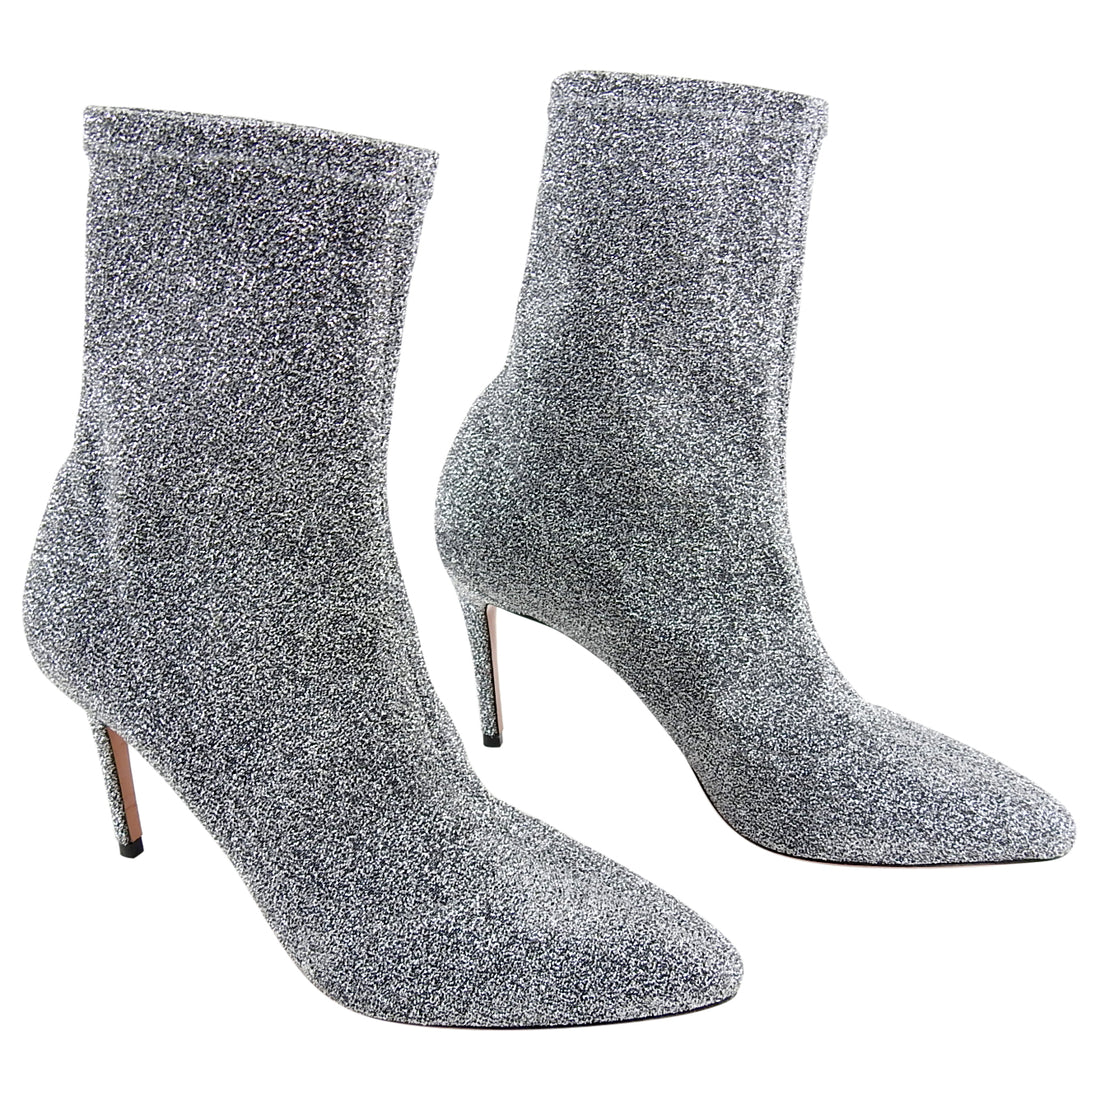 Aquazzura Silver Lurex Stretch Ankle Boots - 37